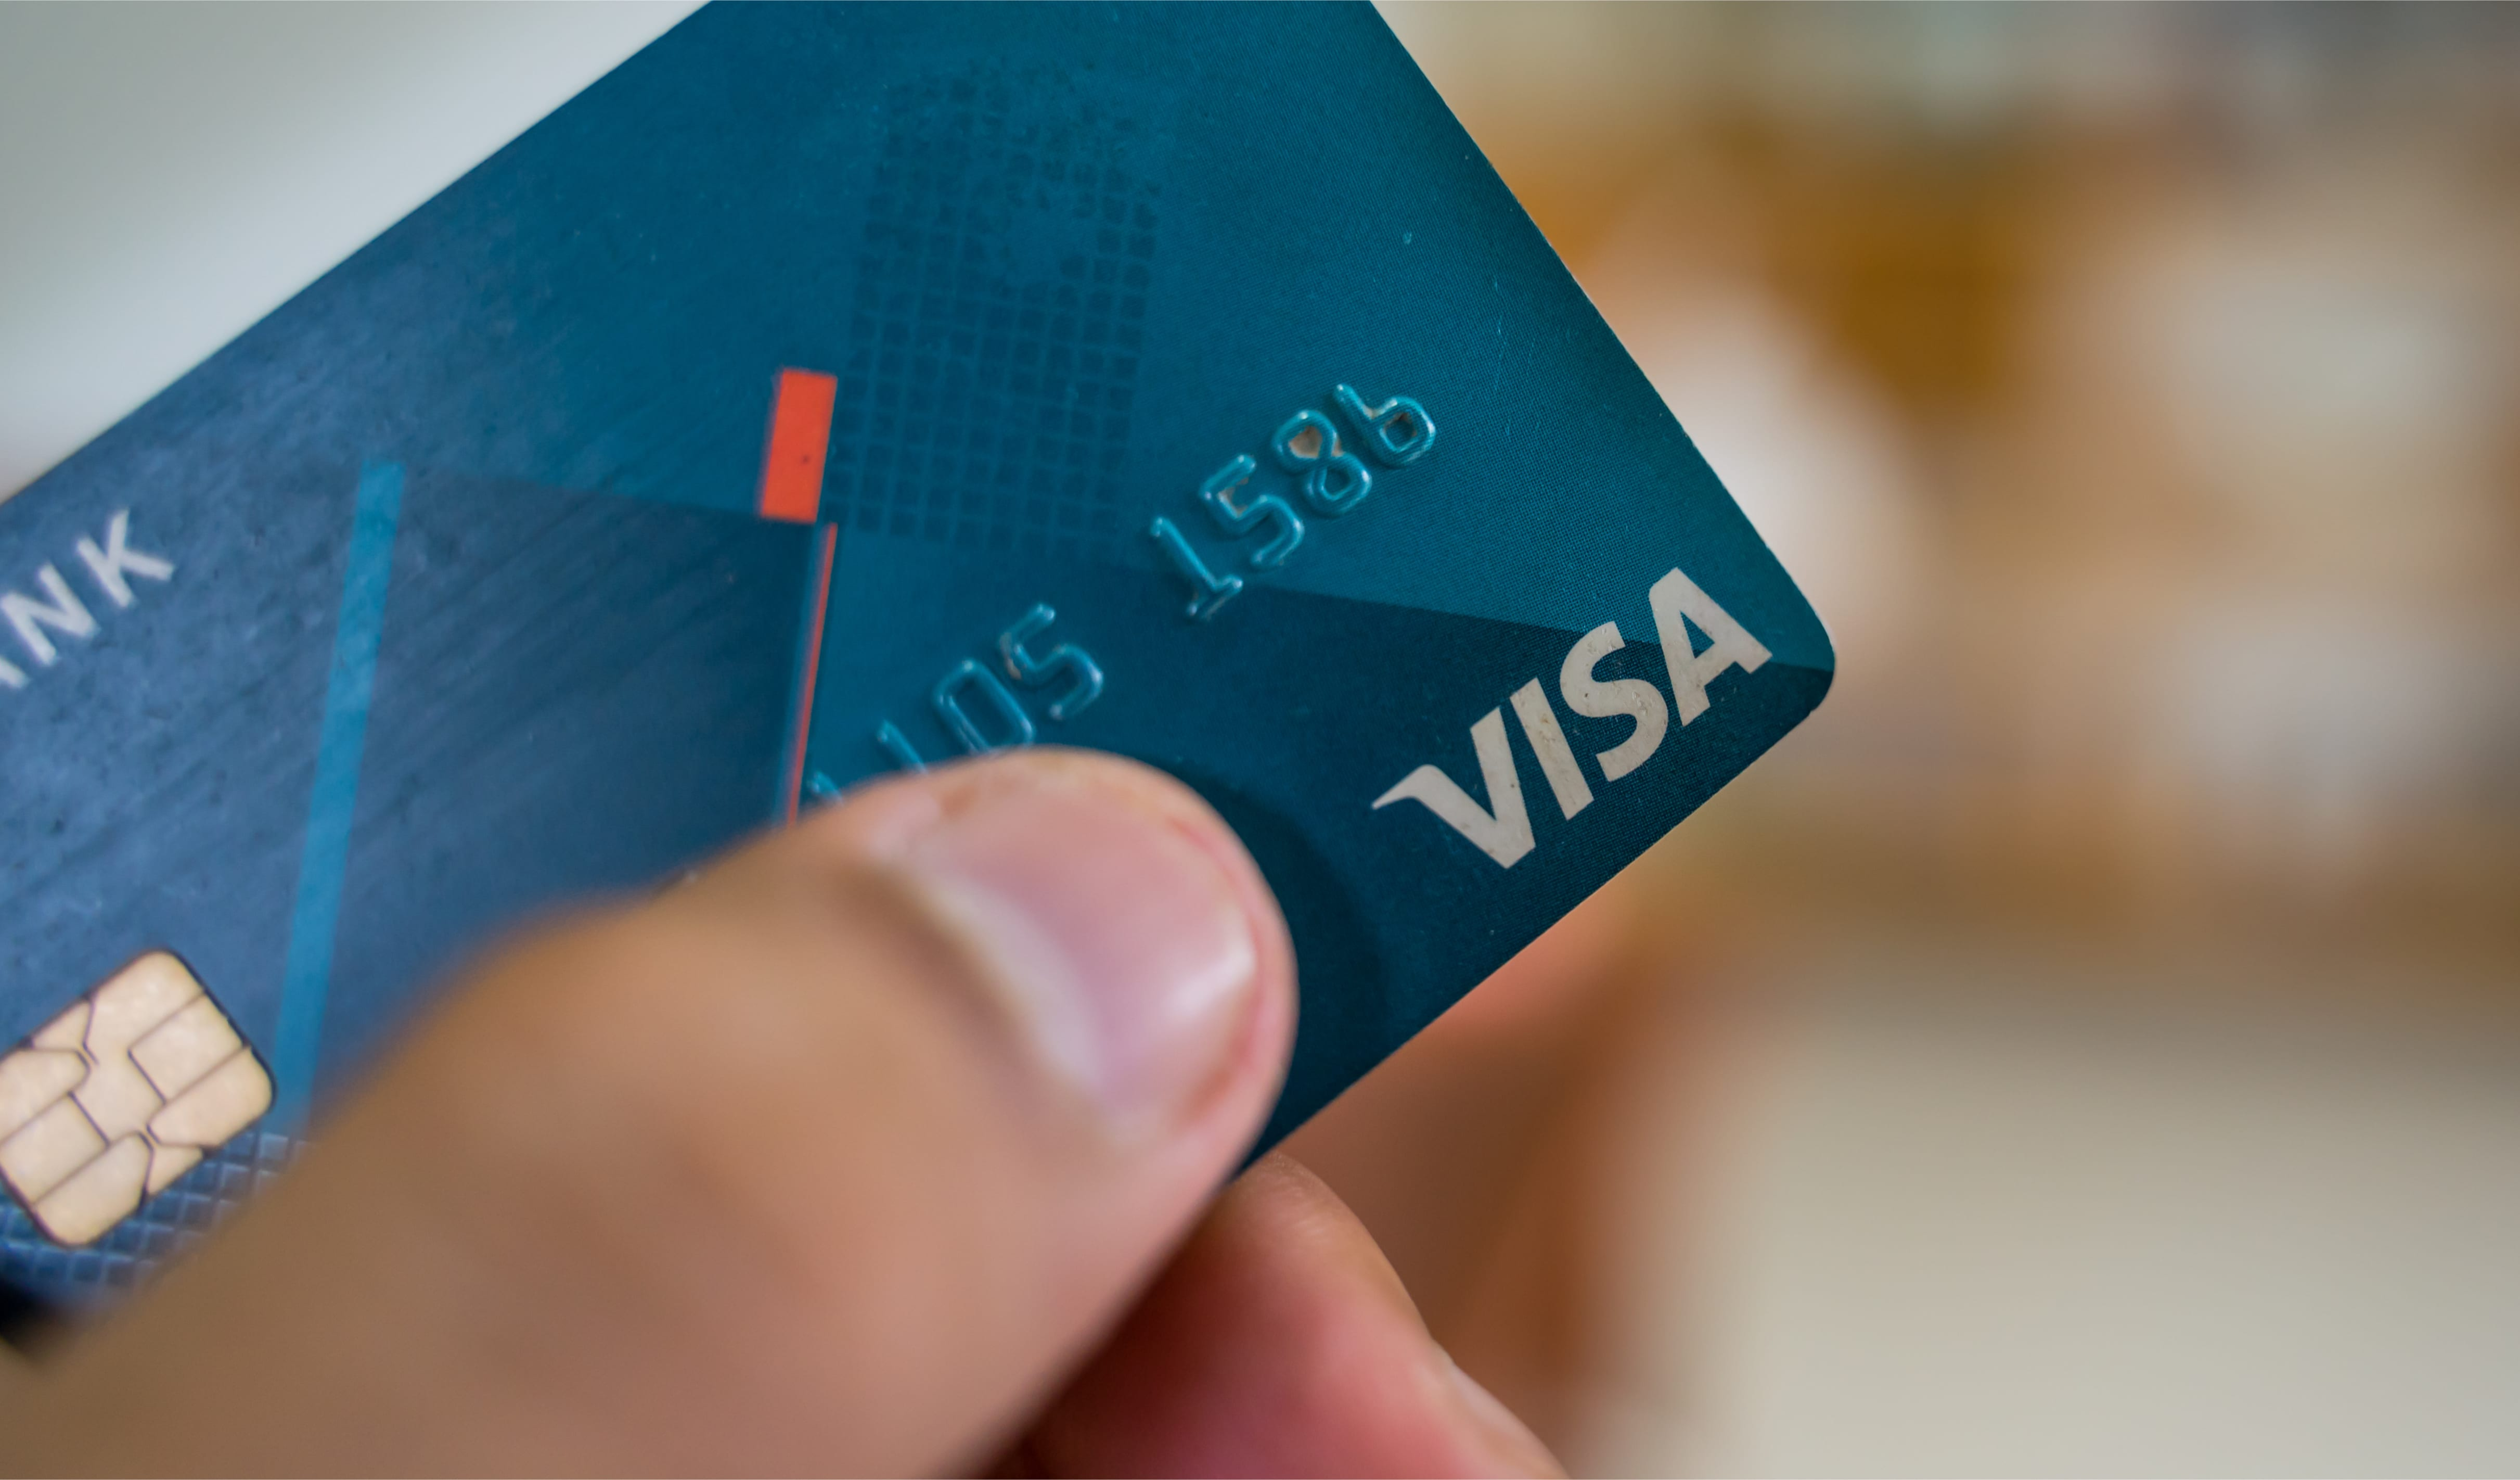 Visa: Chip Cards Reduce Counterfeit Fraud By 87 Pct